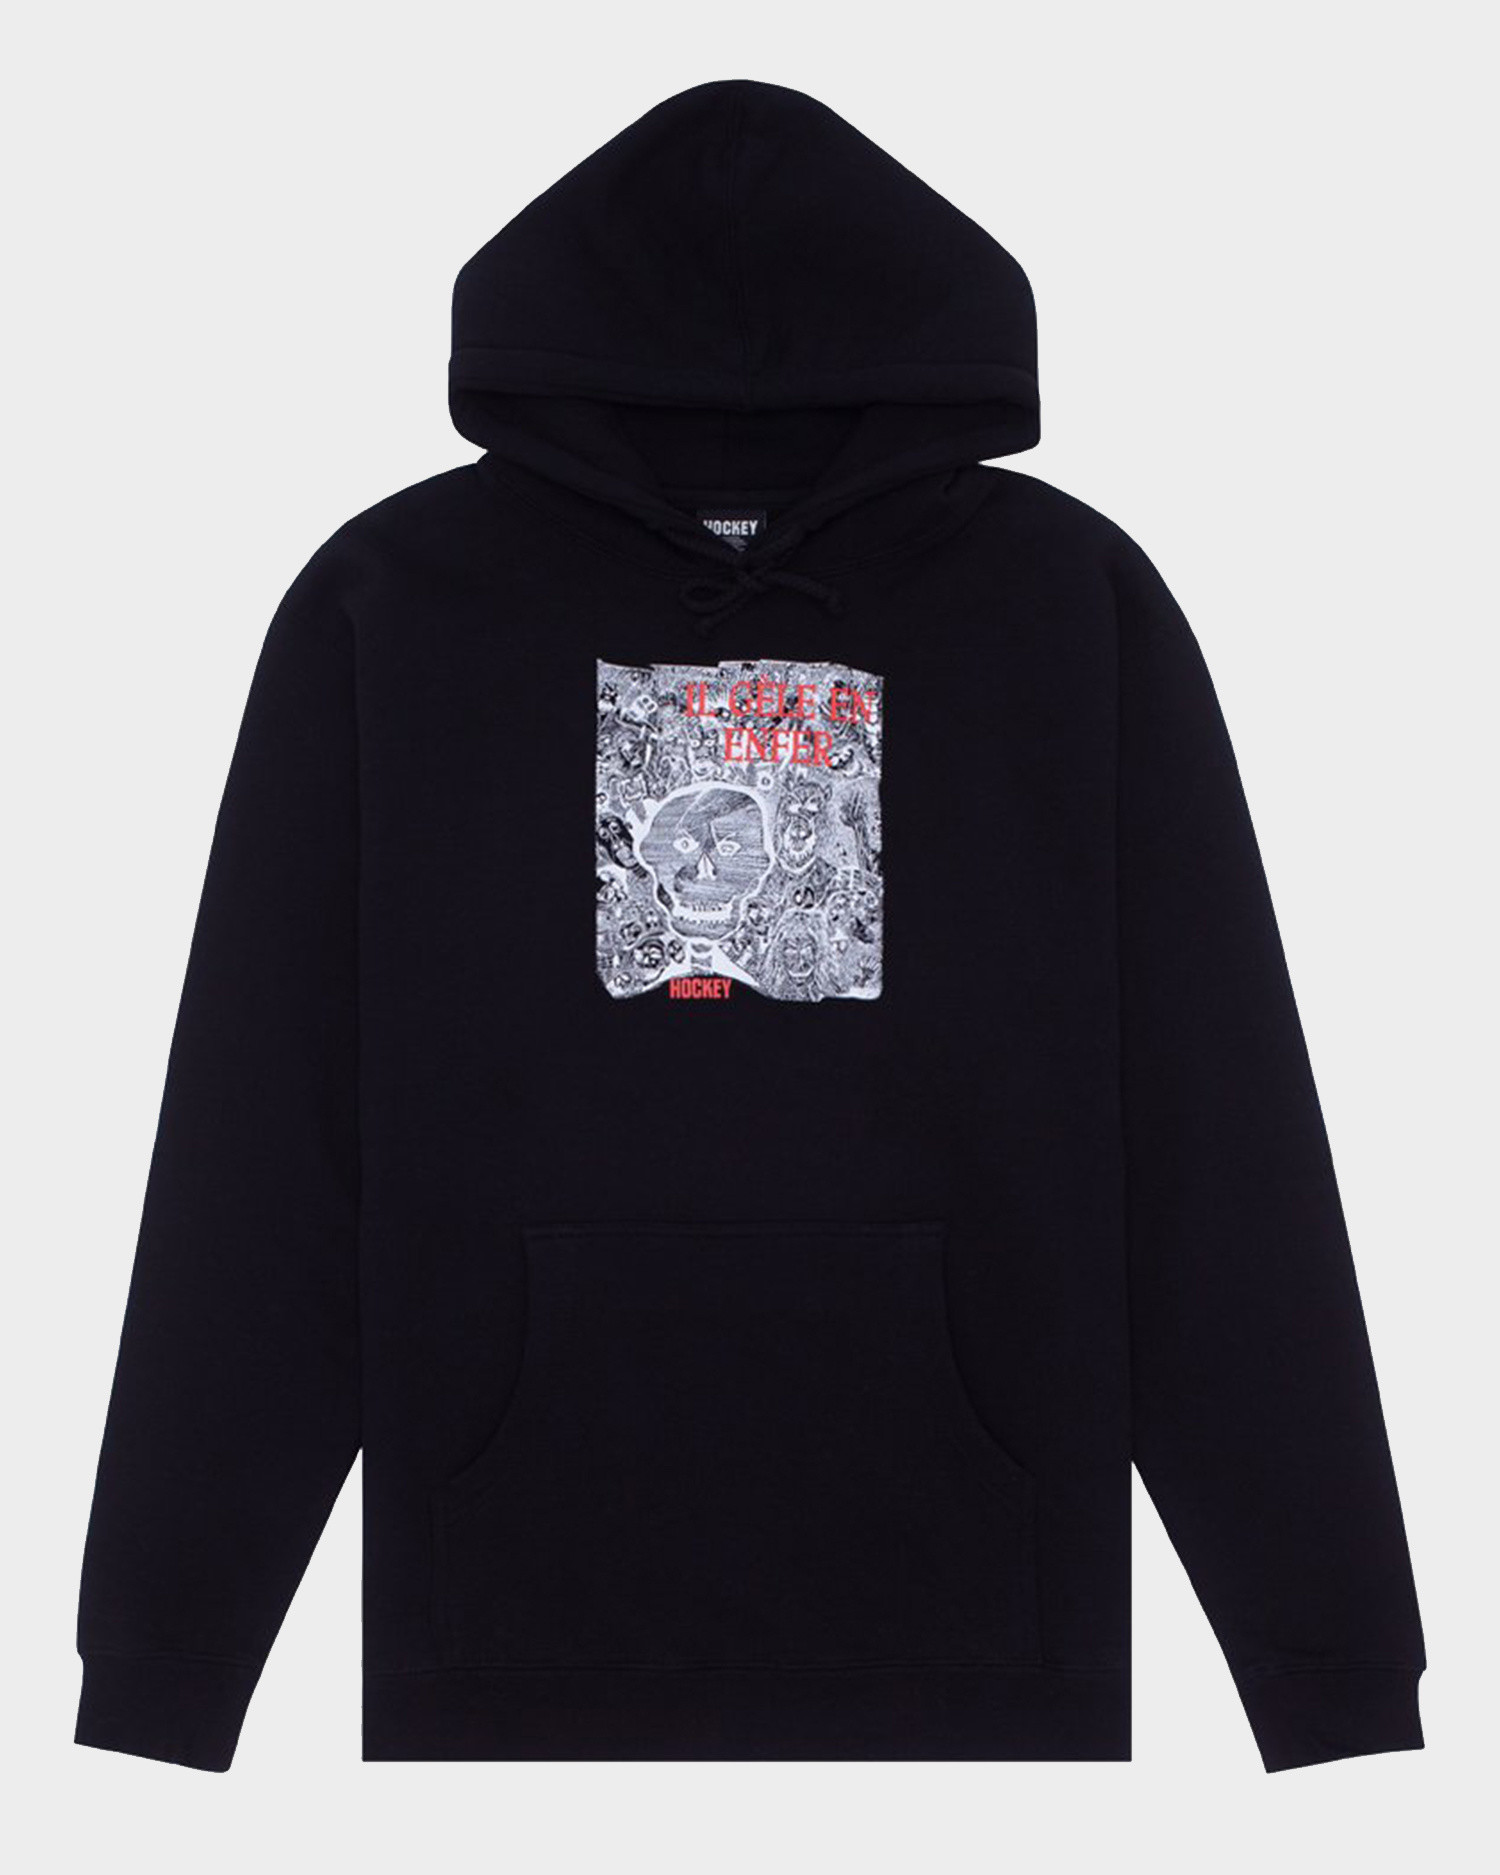 Hockey Disruption Hoodie Black